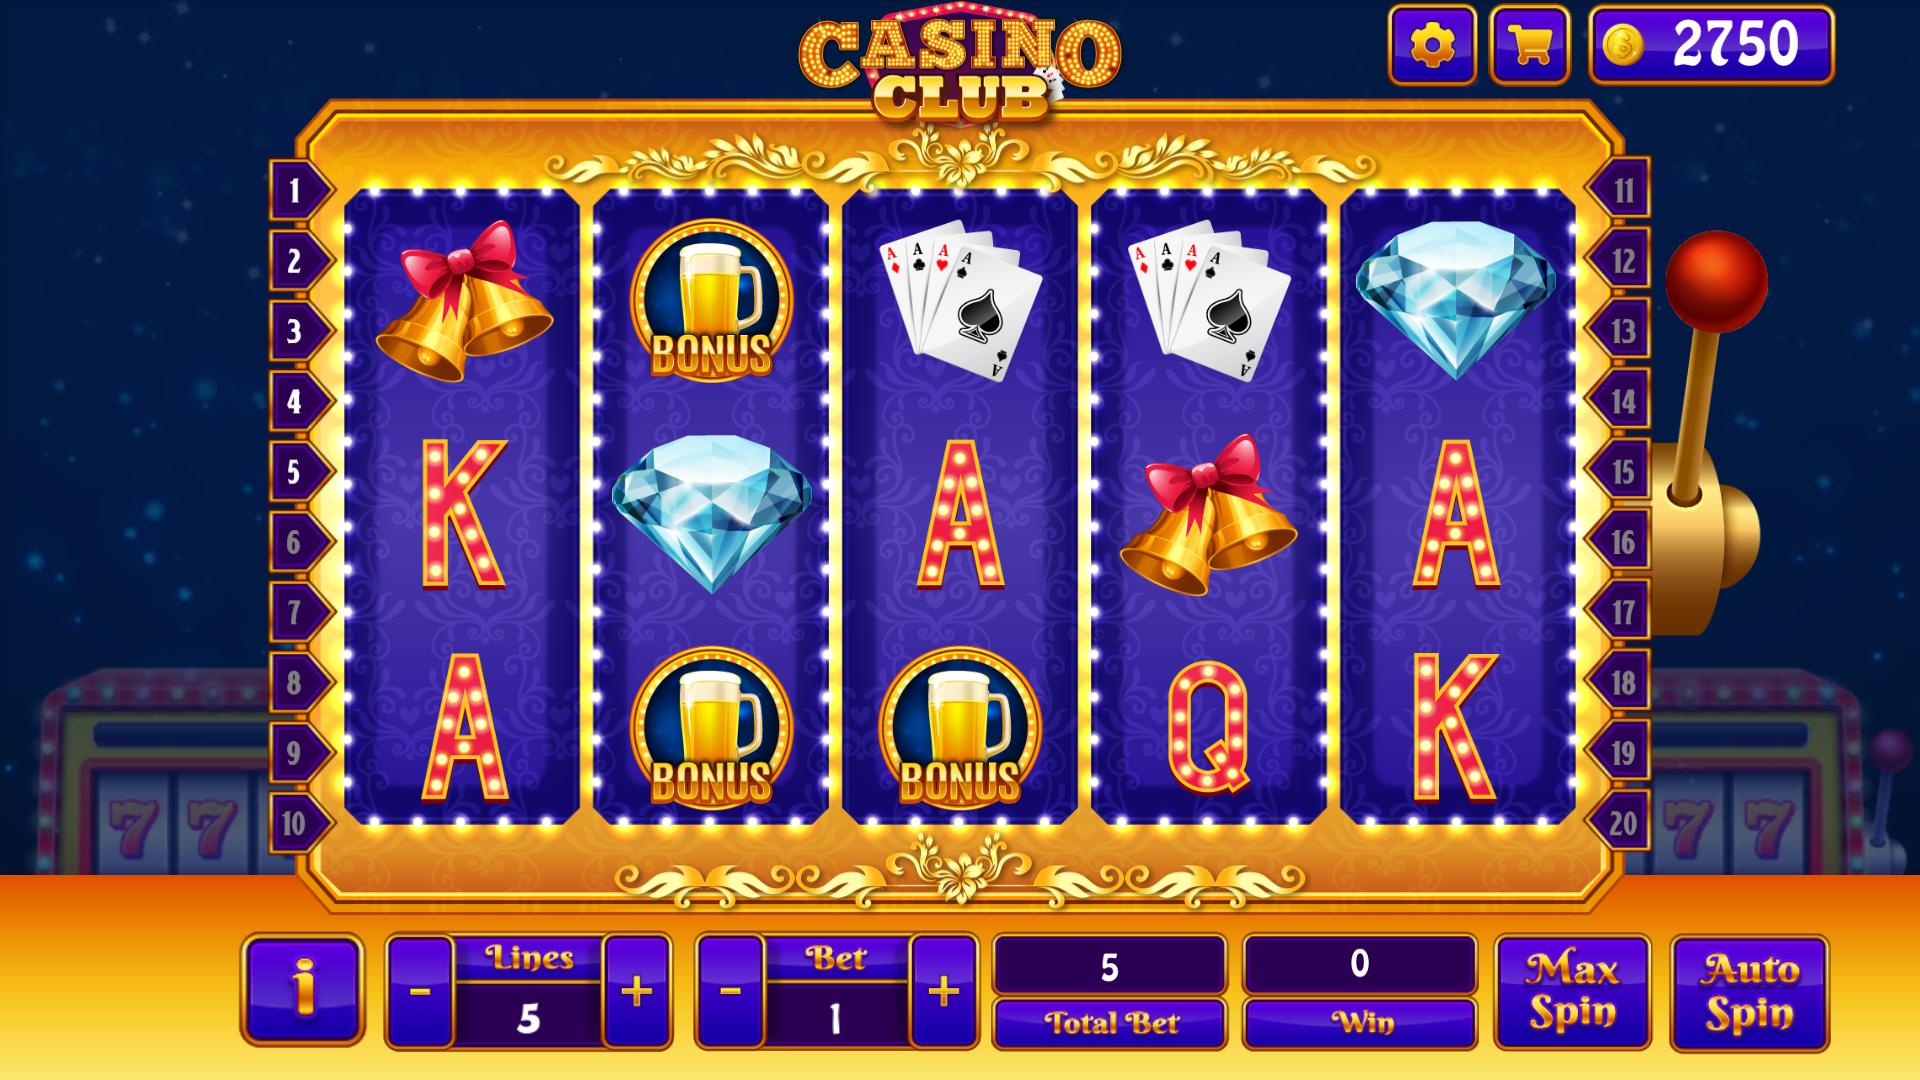 Casino club.com download god of war 2 game trainer for pc